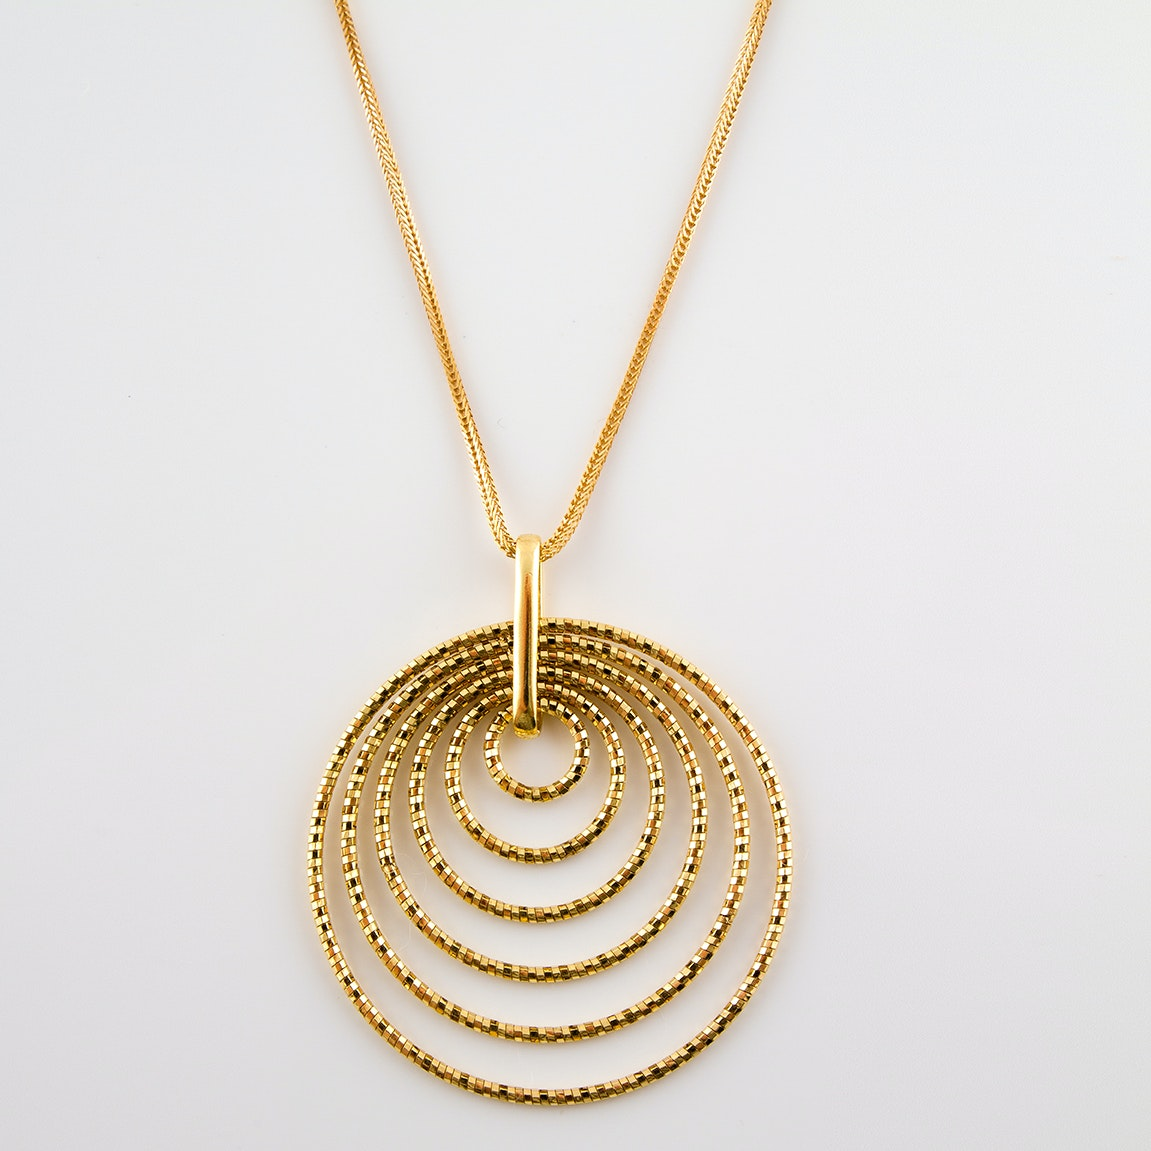 14K Yellow Gold Necklace with Circular Pendant